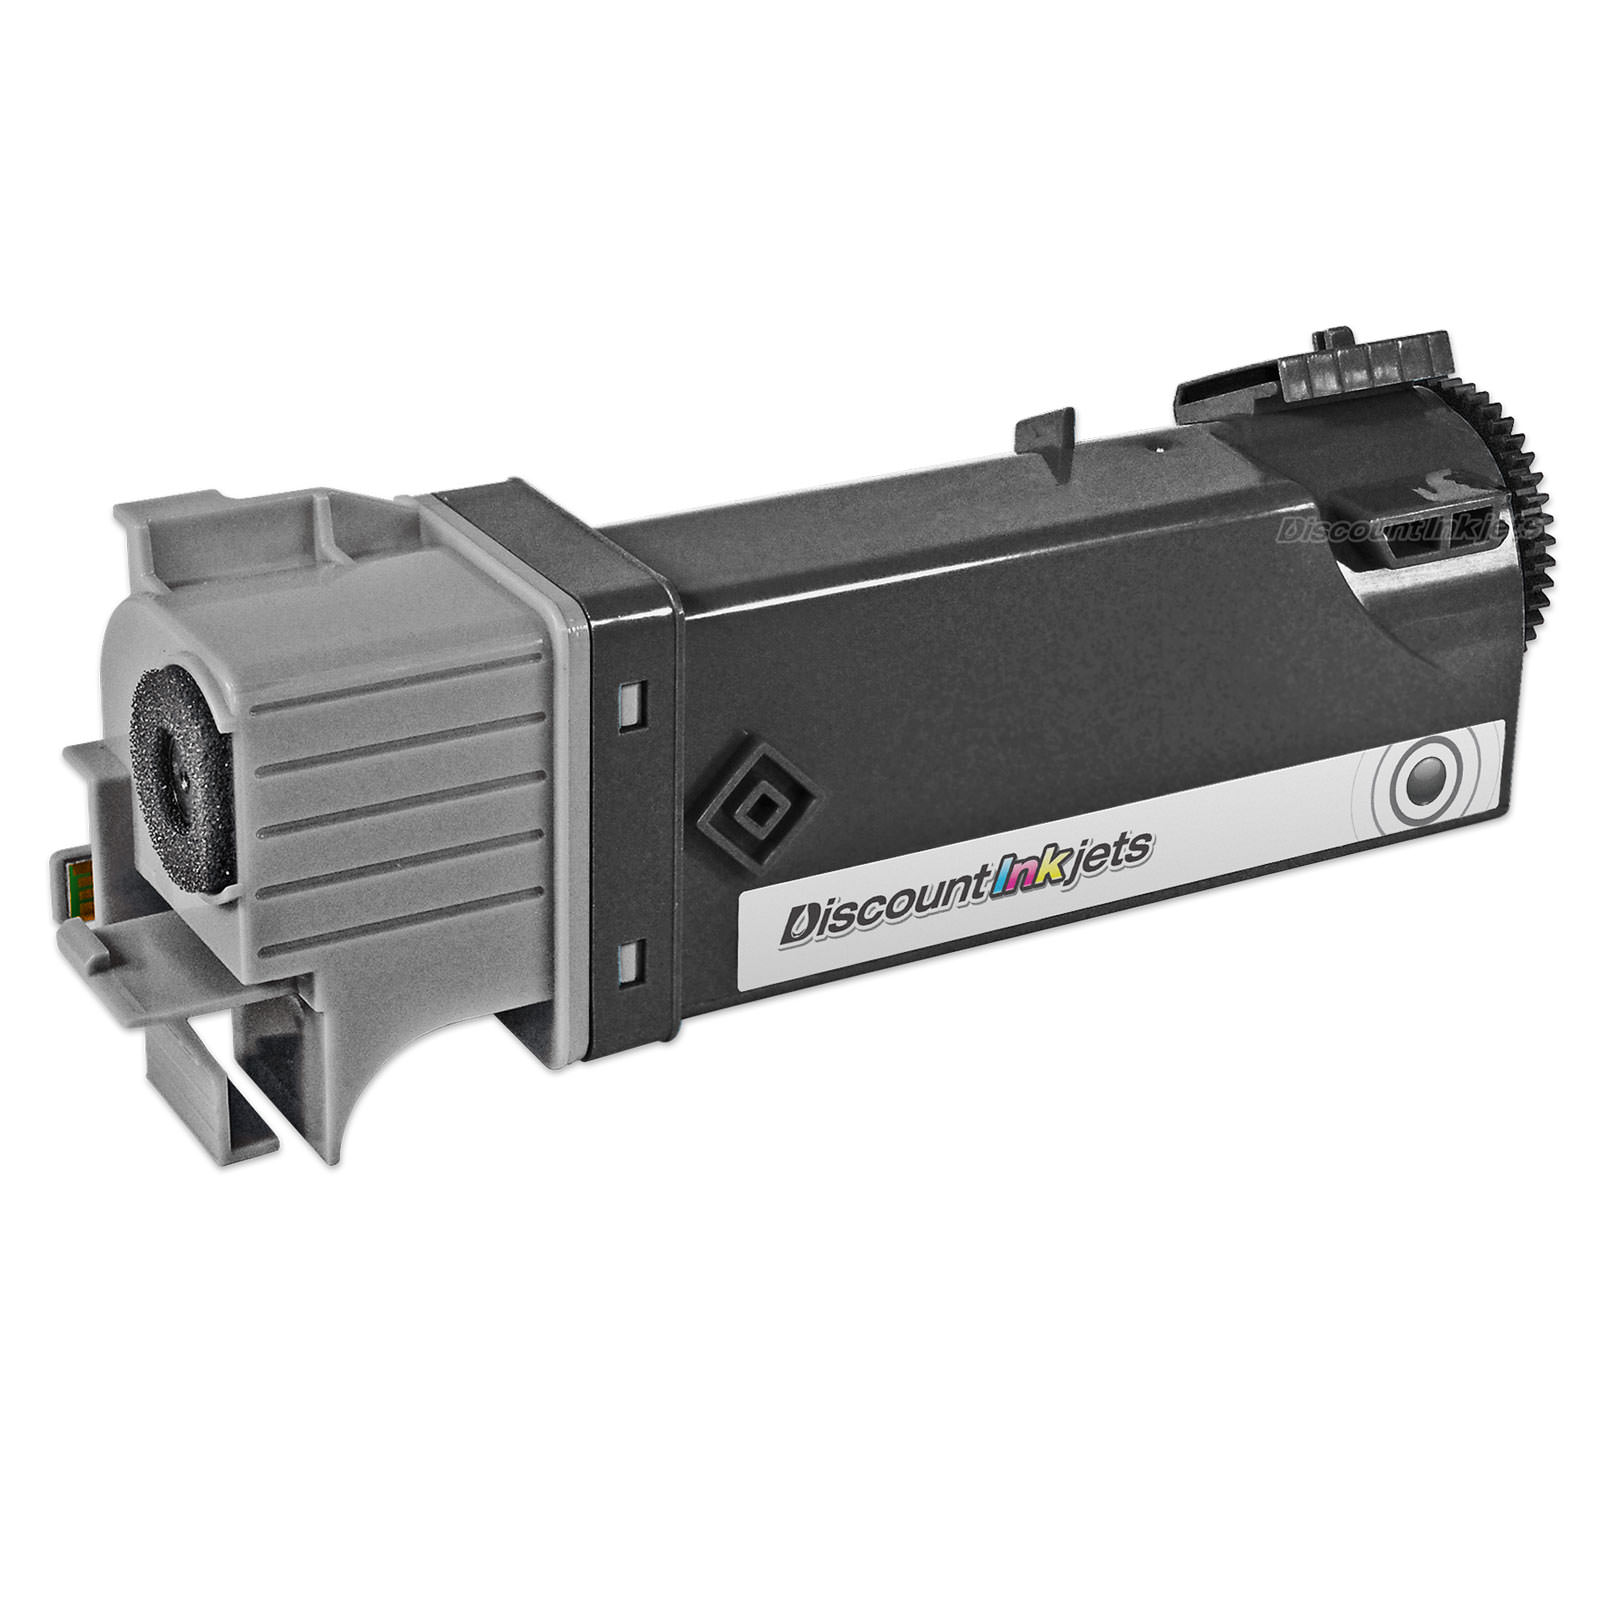 Xerox 106R01597 Compatible Black Toner Cartridge for Phaser 6500 WorkCentre 6505